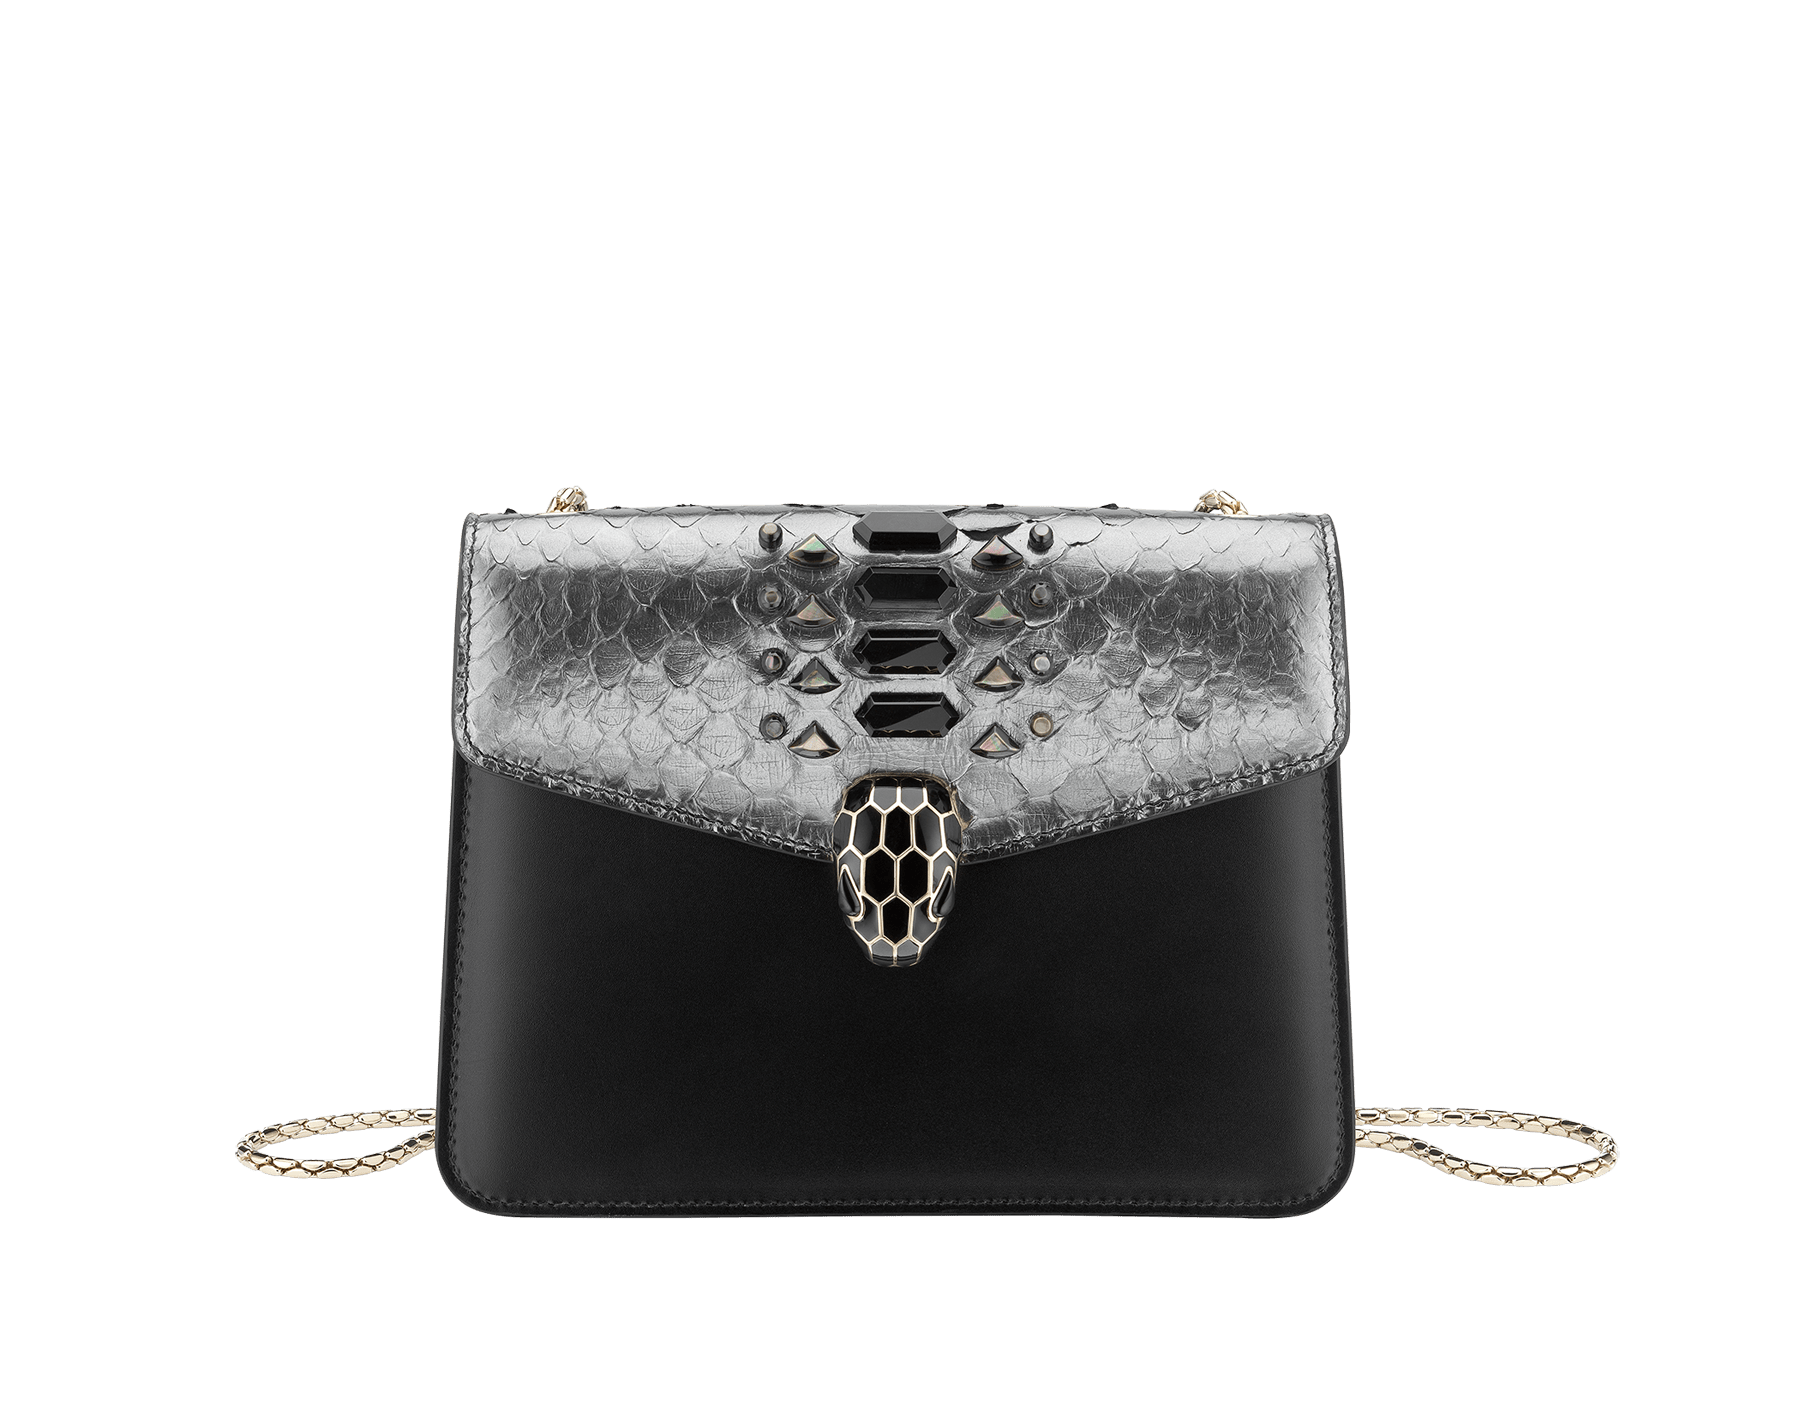 """""""Serpenti Forever"""" crossbody bag in dark silver python skin flap with onyx scales applied and black smooth calf leather body. Iconic snakehead closure in light gold plated brass enriched with matte and shiny black enamel and black onyx eyes. 289420 image 1"""